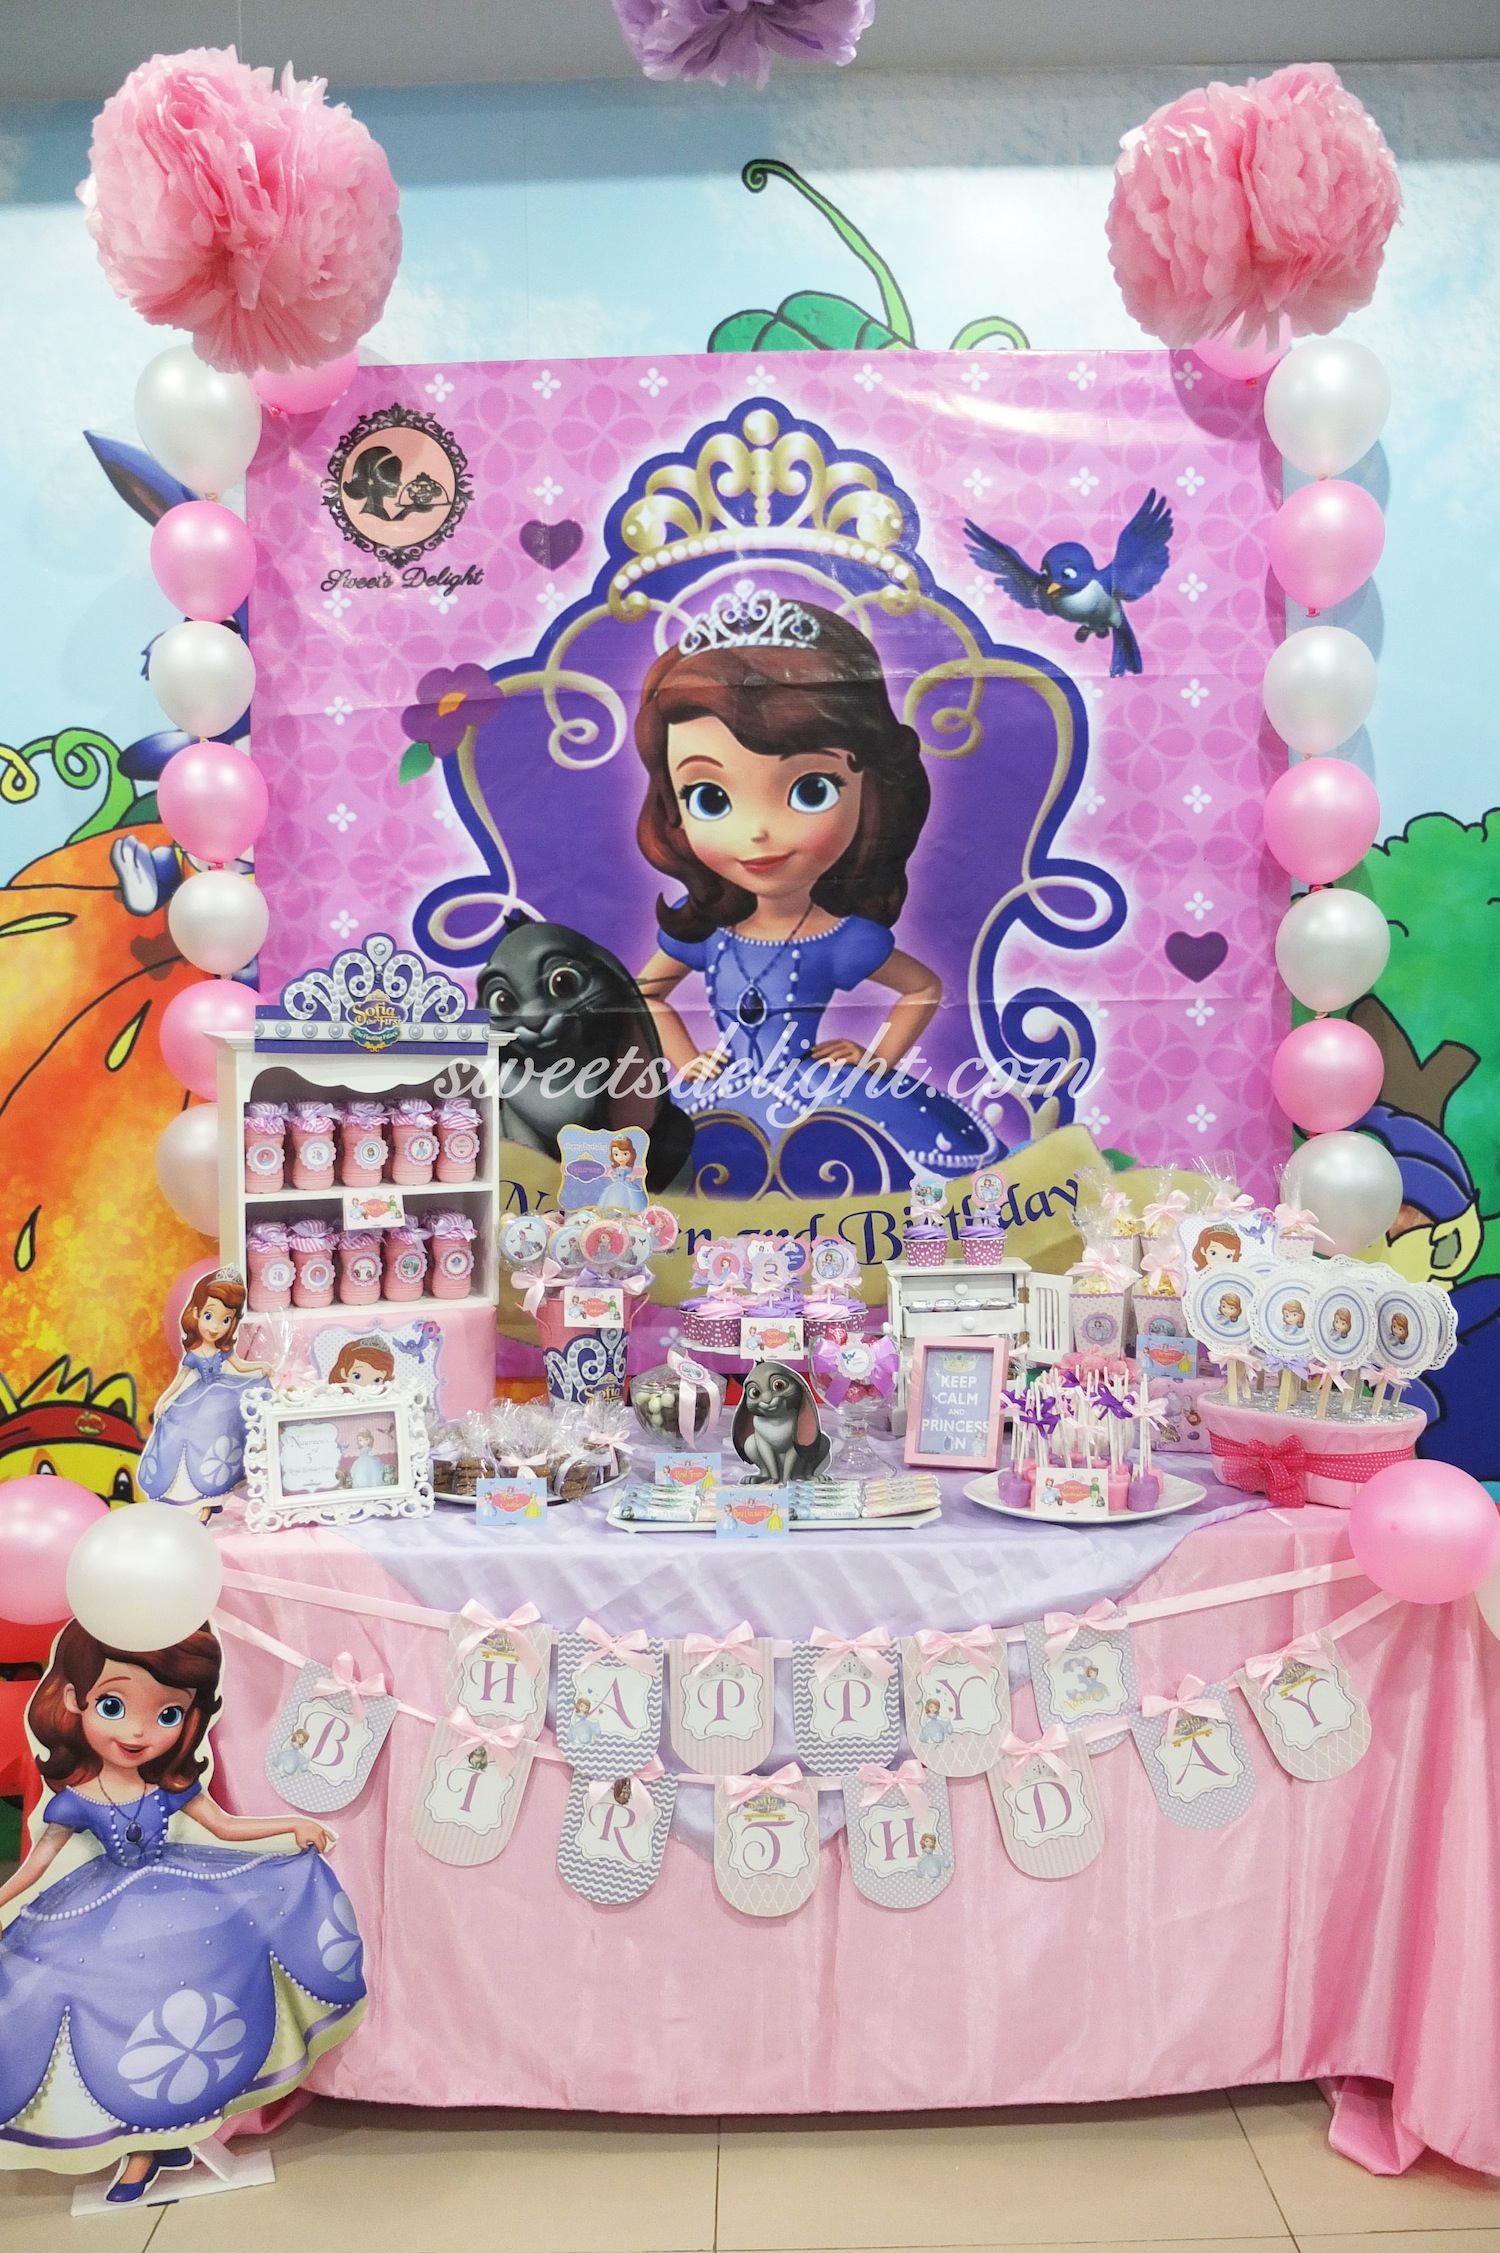 Sophia The First Naureen Birthday Party Sweets Delight